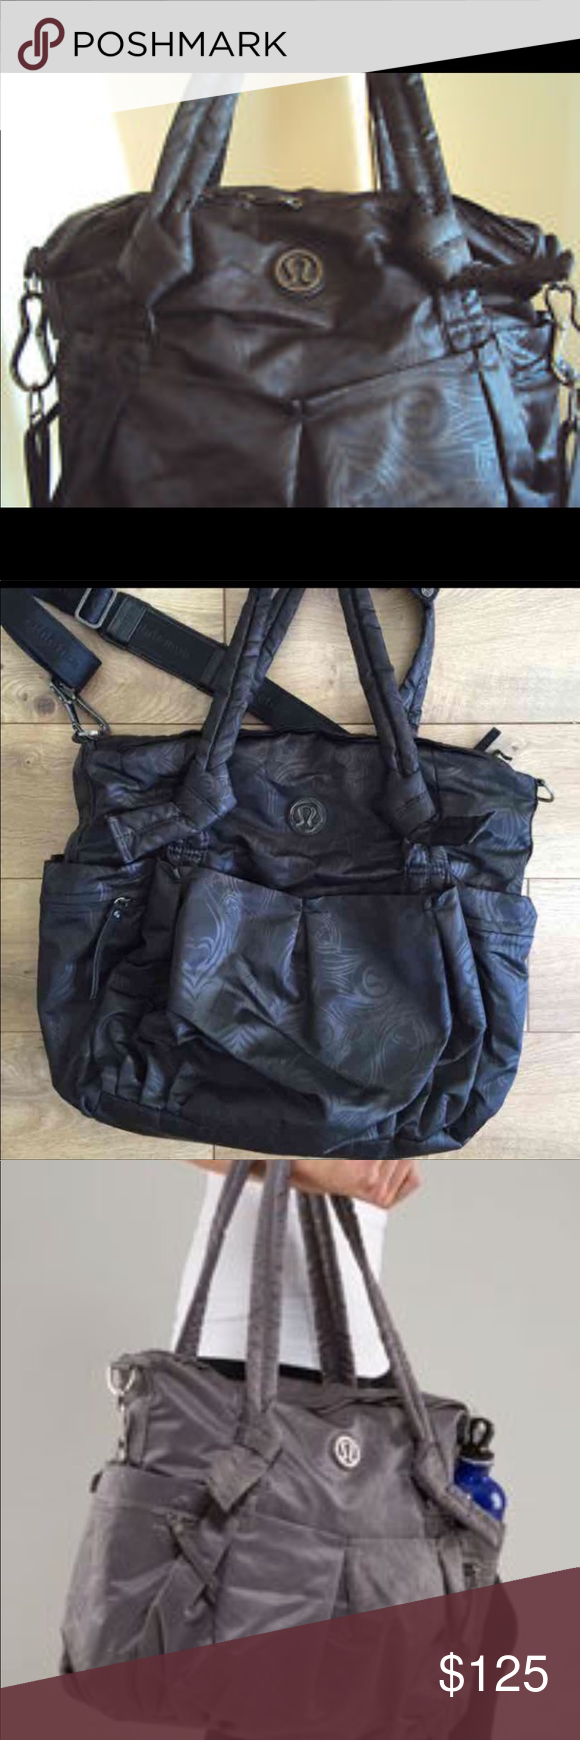 d77518d1decf35 ... Lululemon Triumph Tote in (RARE) Black PEACOCK Carried once or twice.... EUC!! No longer available Very hard to find! lululemon athletica Bags Totes